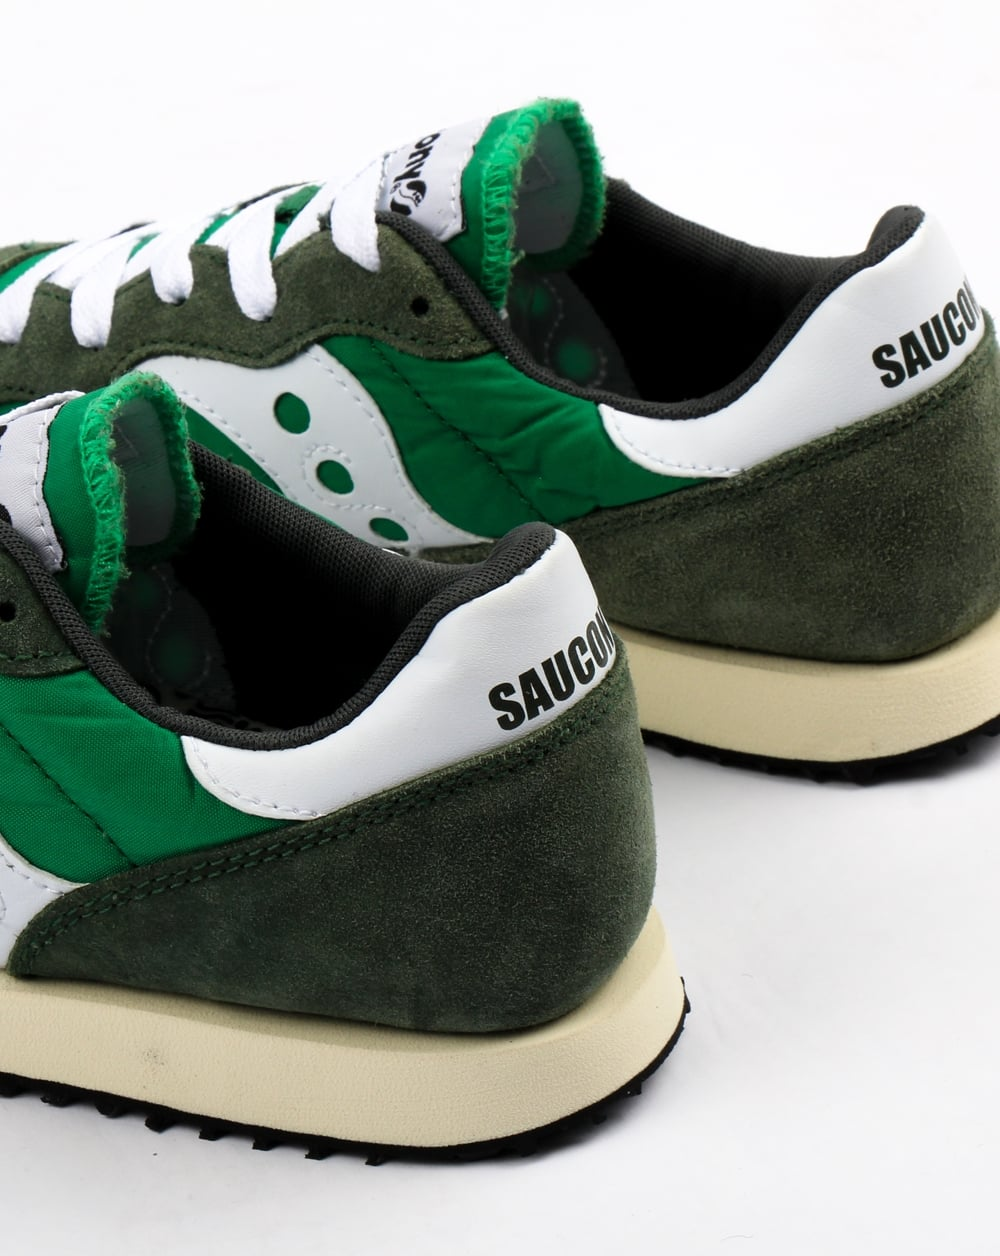 Saucony Dxn Vintage Trainers Green Whiteshoessneakers